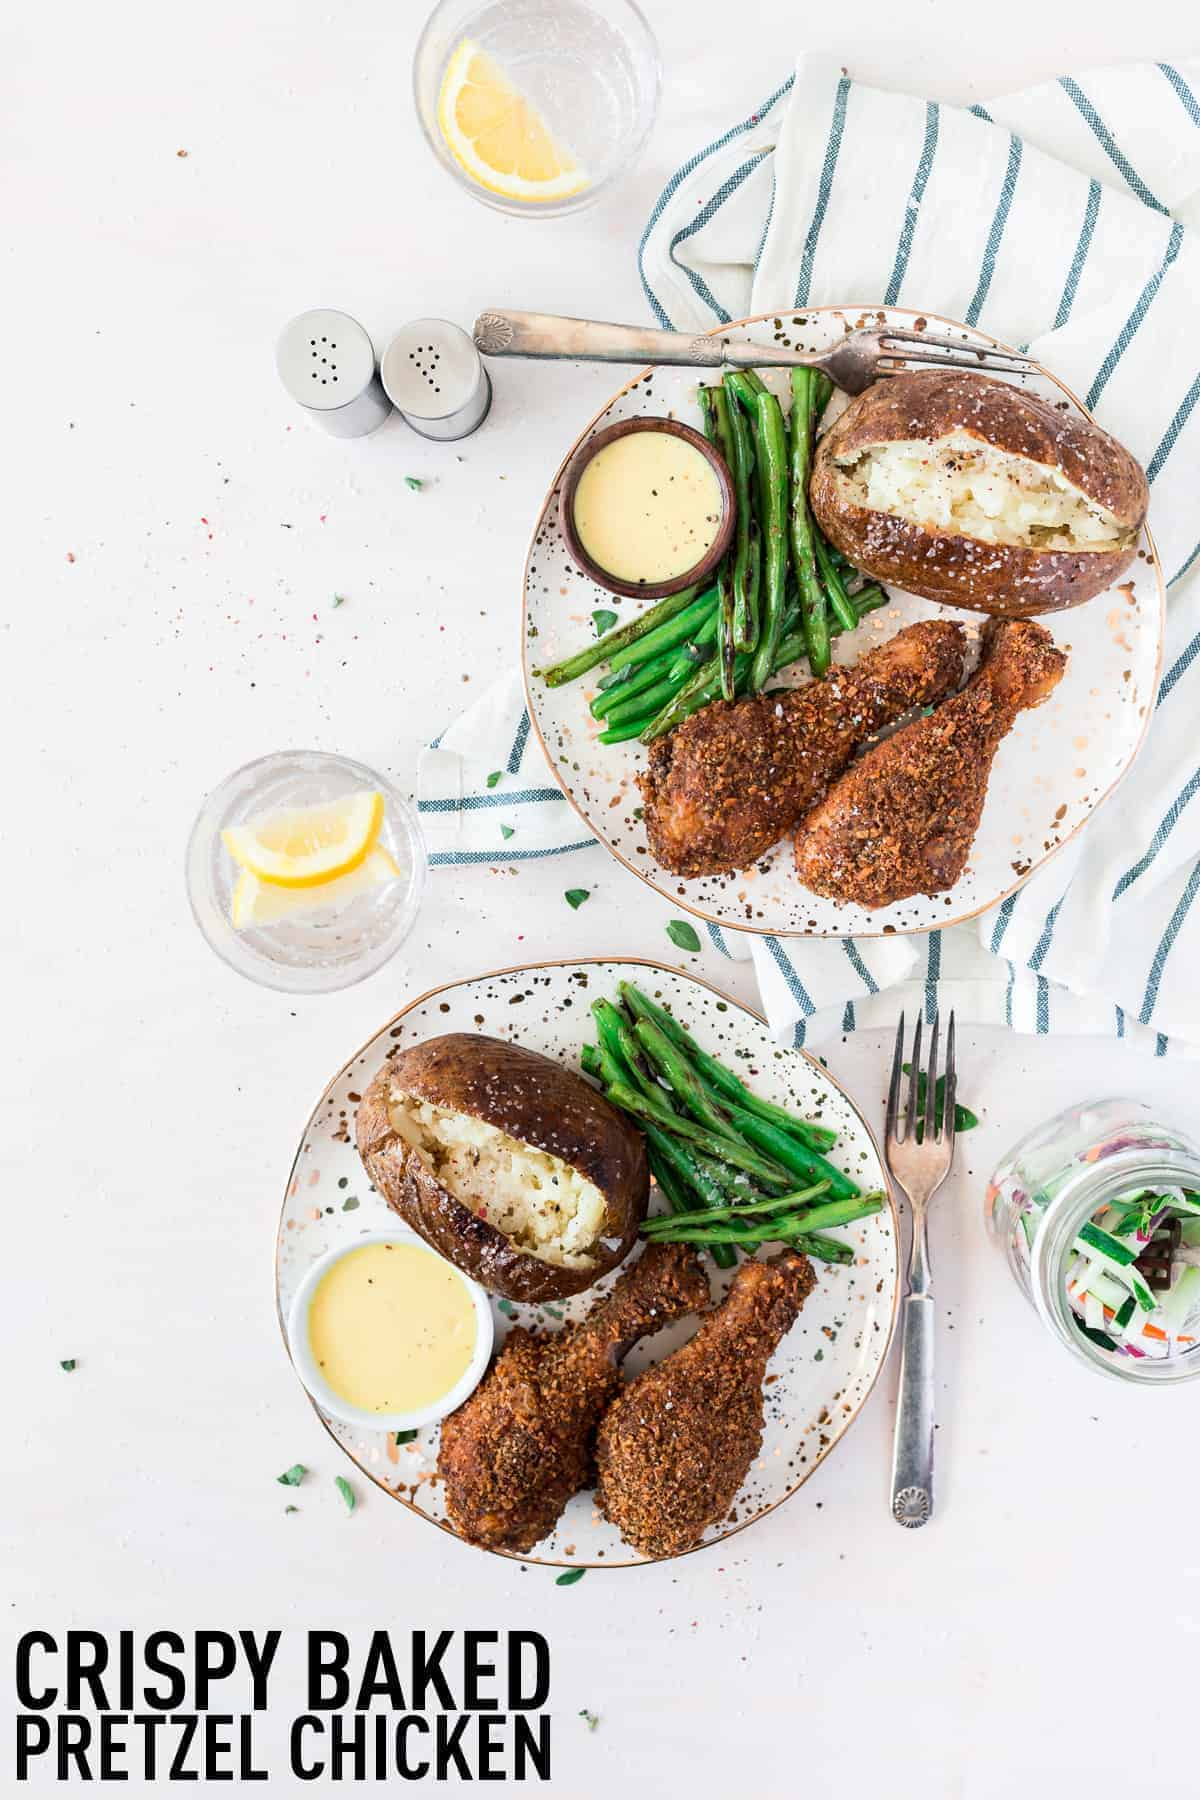 Delicious crispy baked chicken drumsticks made with a homemade pretzel and spices coating which makes the crispiest chicken legs on the block, no frying needed!